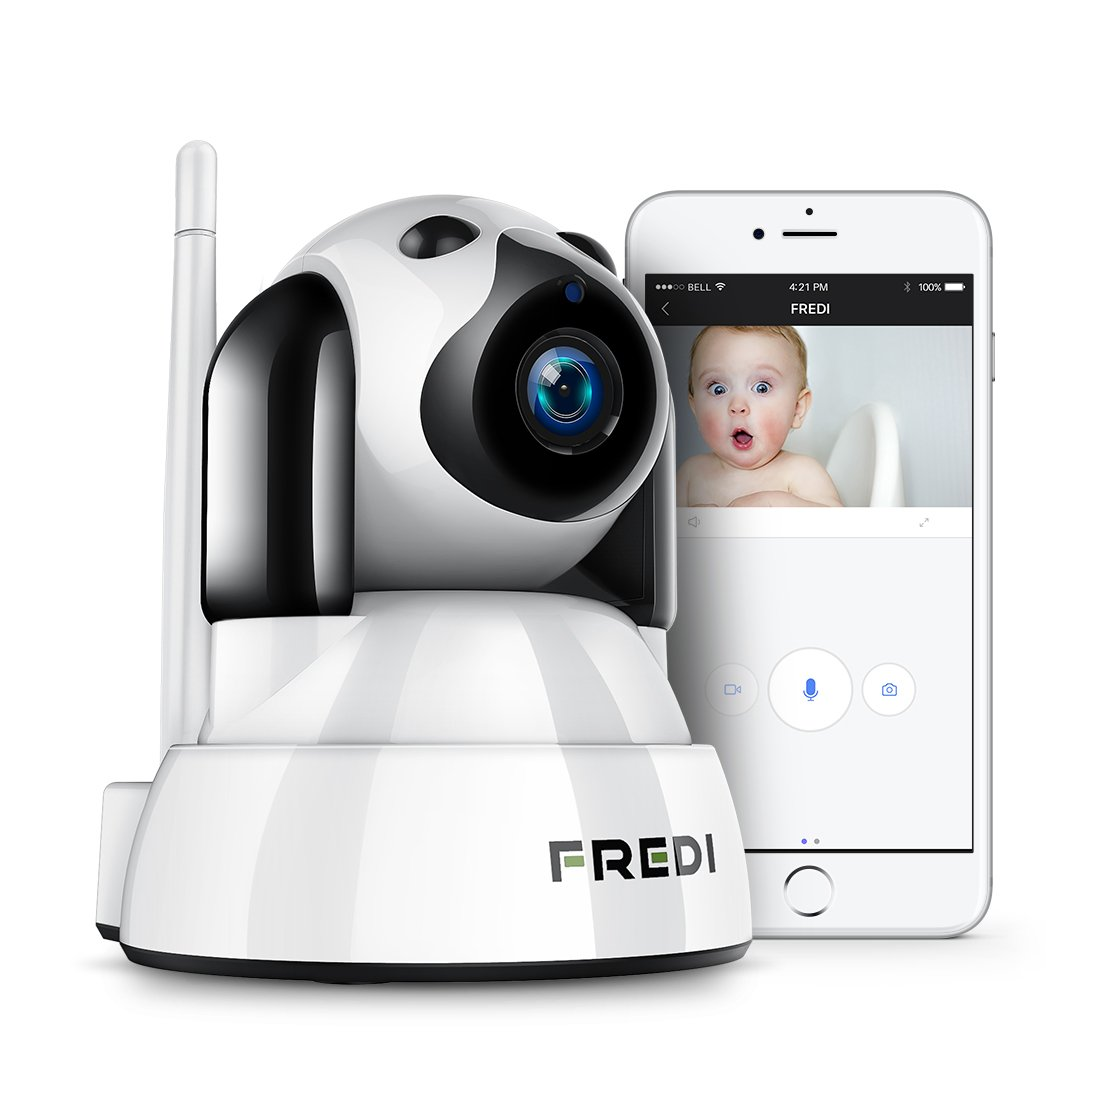 FREDI Baby Monitor,Pet Camera- Wireless Security Camera with Night Vision/Two Way Audio/PTZ/Motion Detection,2.4G WiFi…